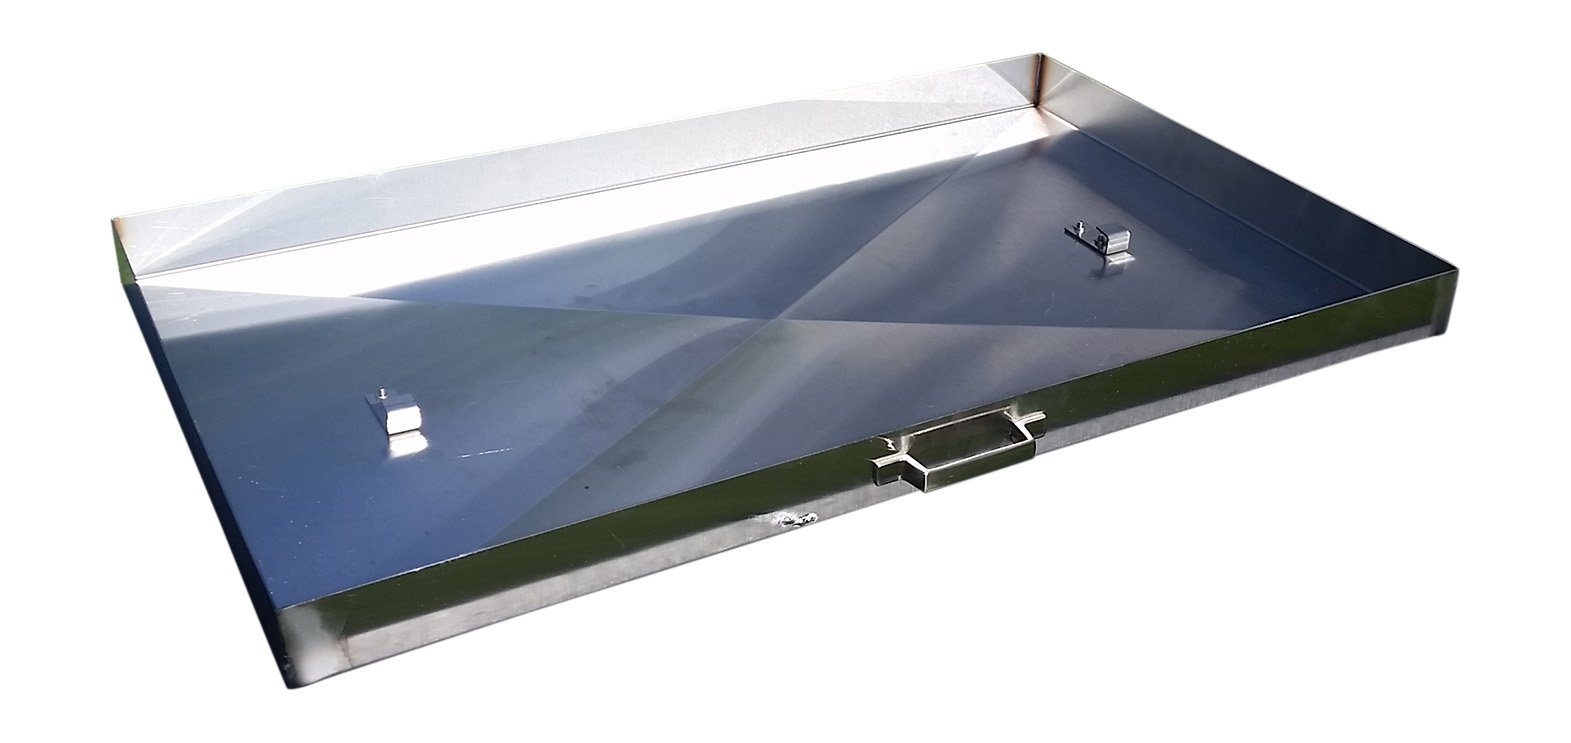 Griddle Cover, Stainless Steel, for 28-inch Blackstone Griddle by Backyard Life Gear (Image #2)